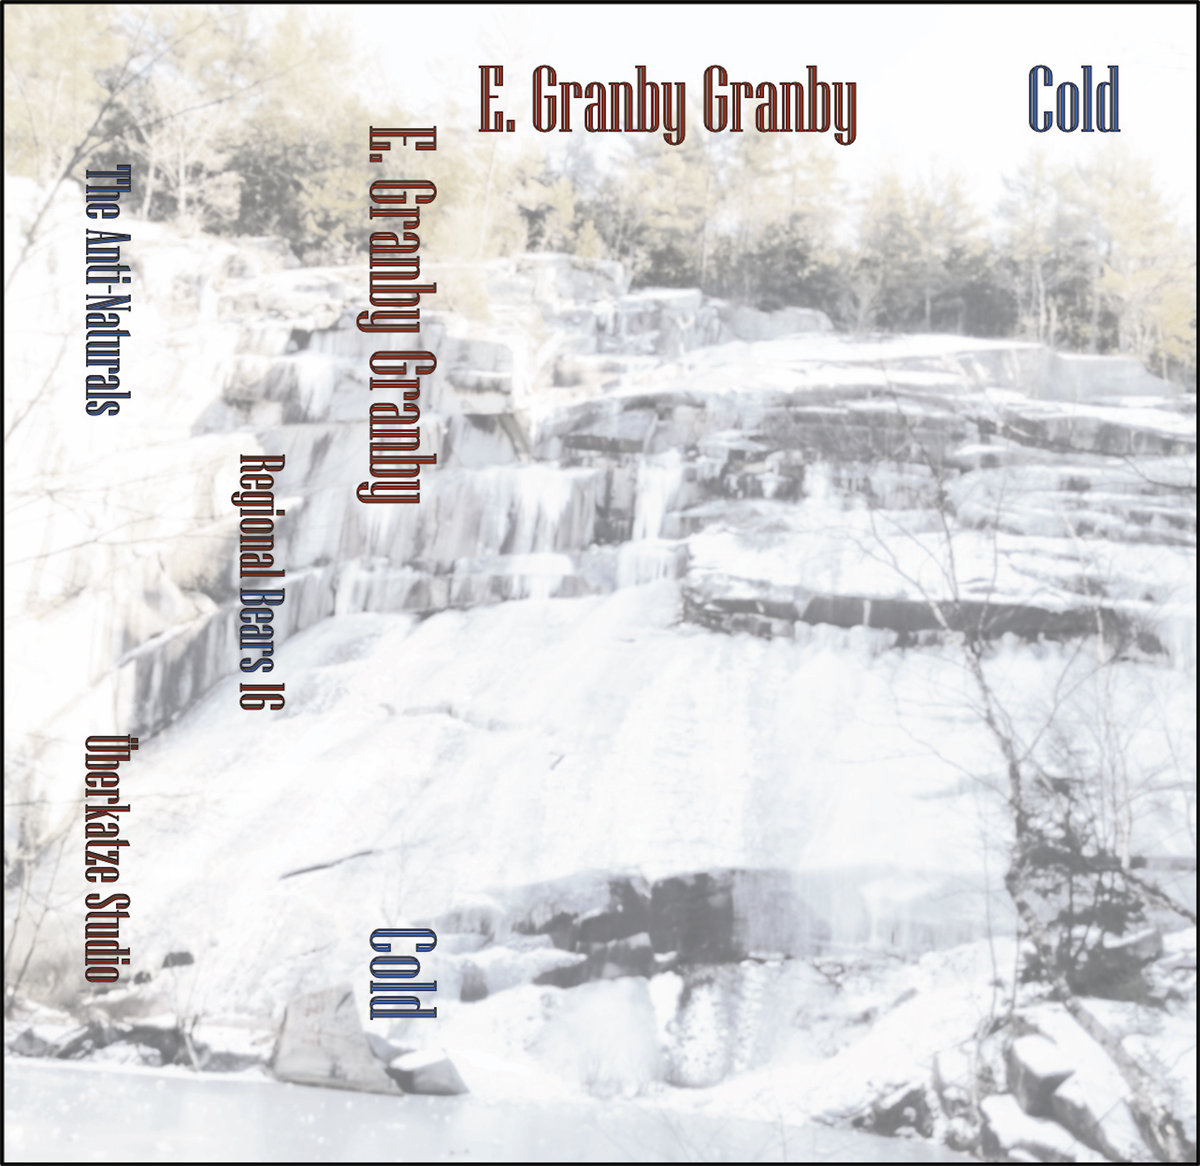 E. Granby Granby - Cold | LISTEN | Chocolate Grinder - Tiny Mix Tapes